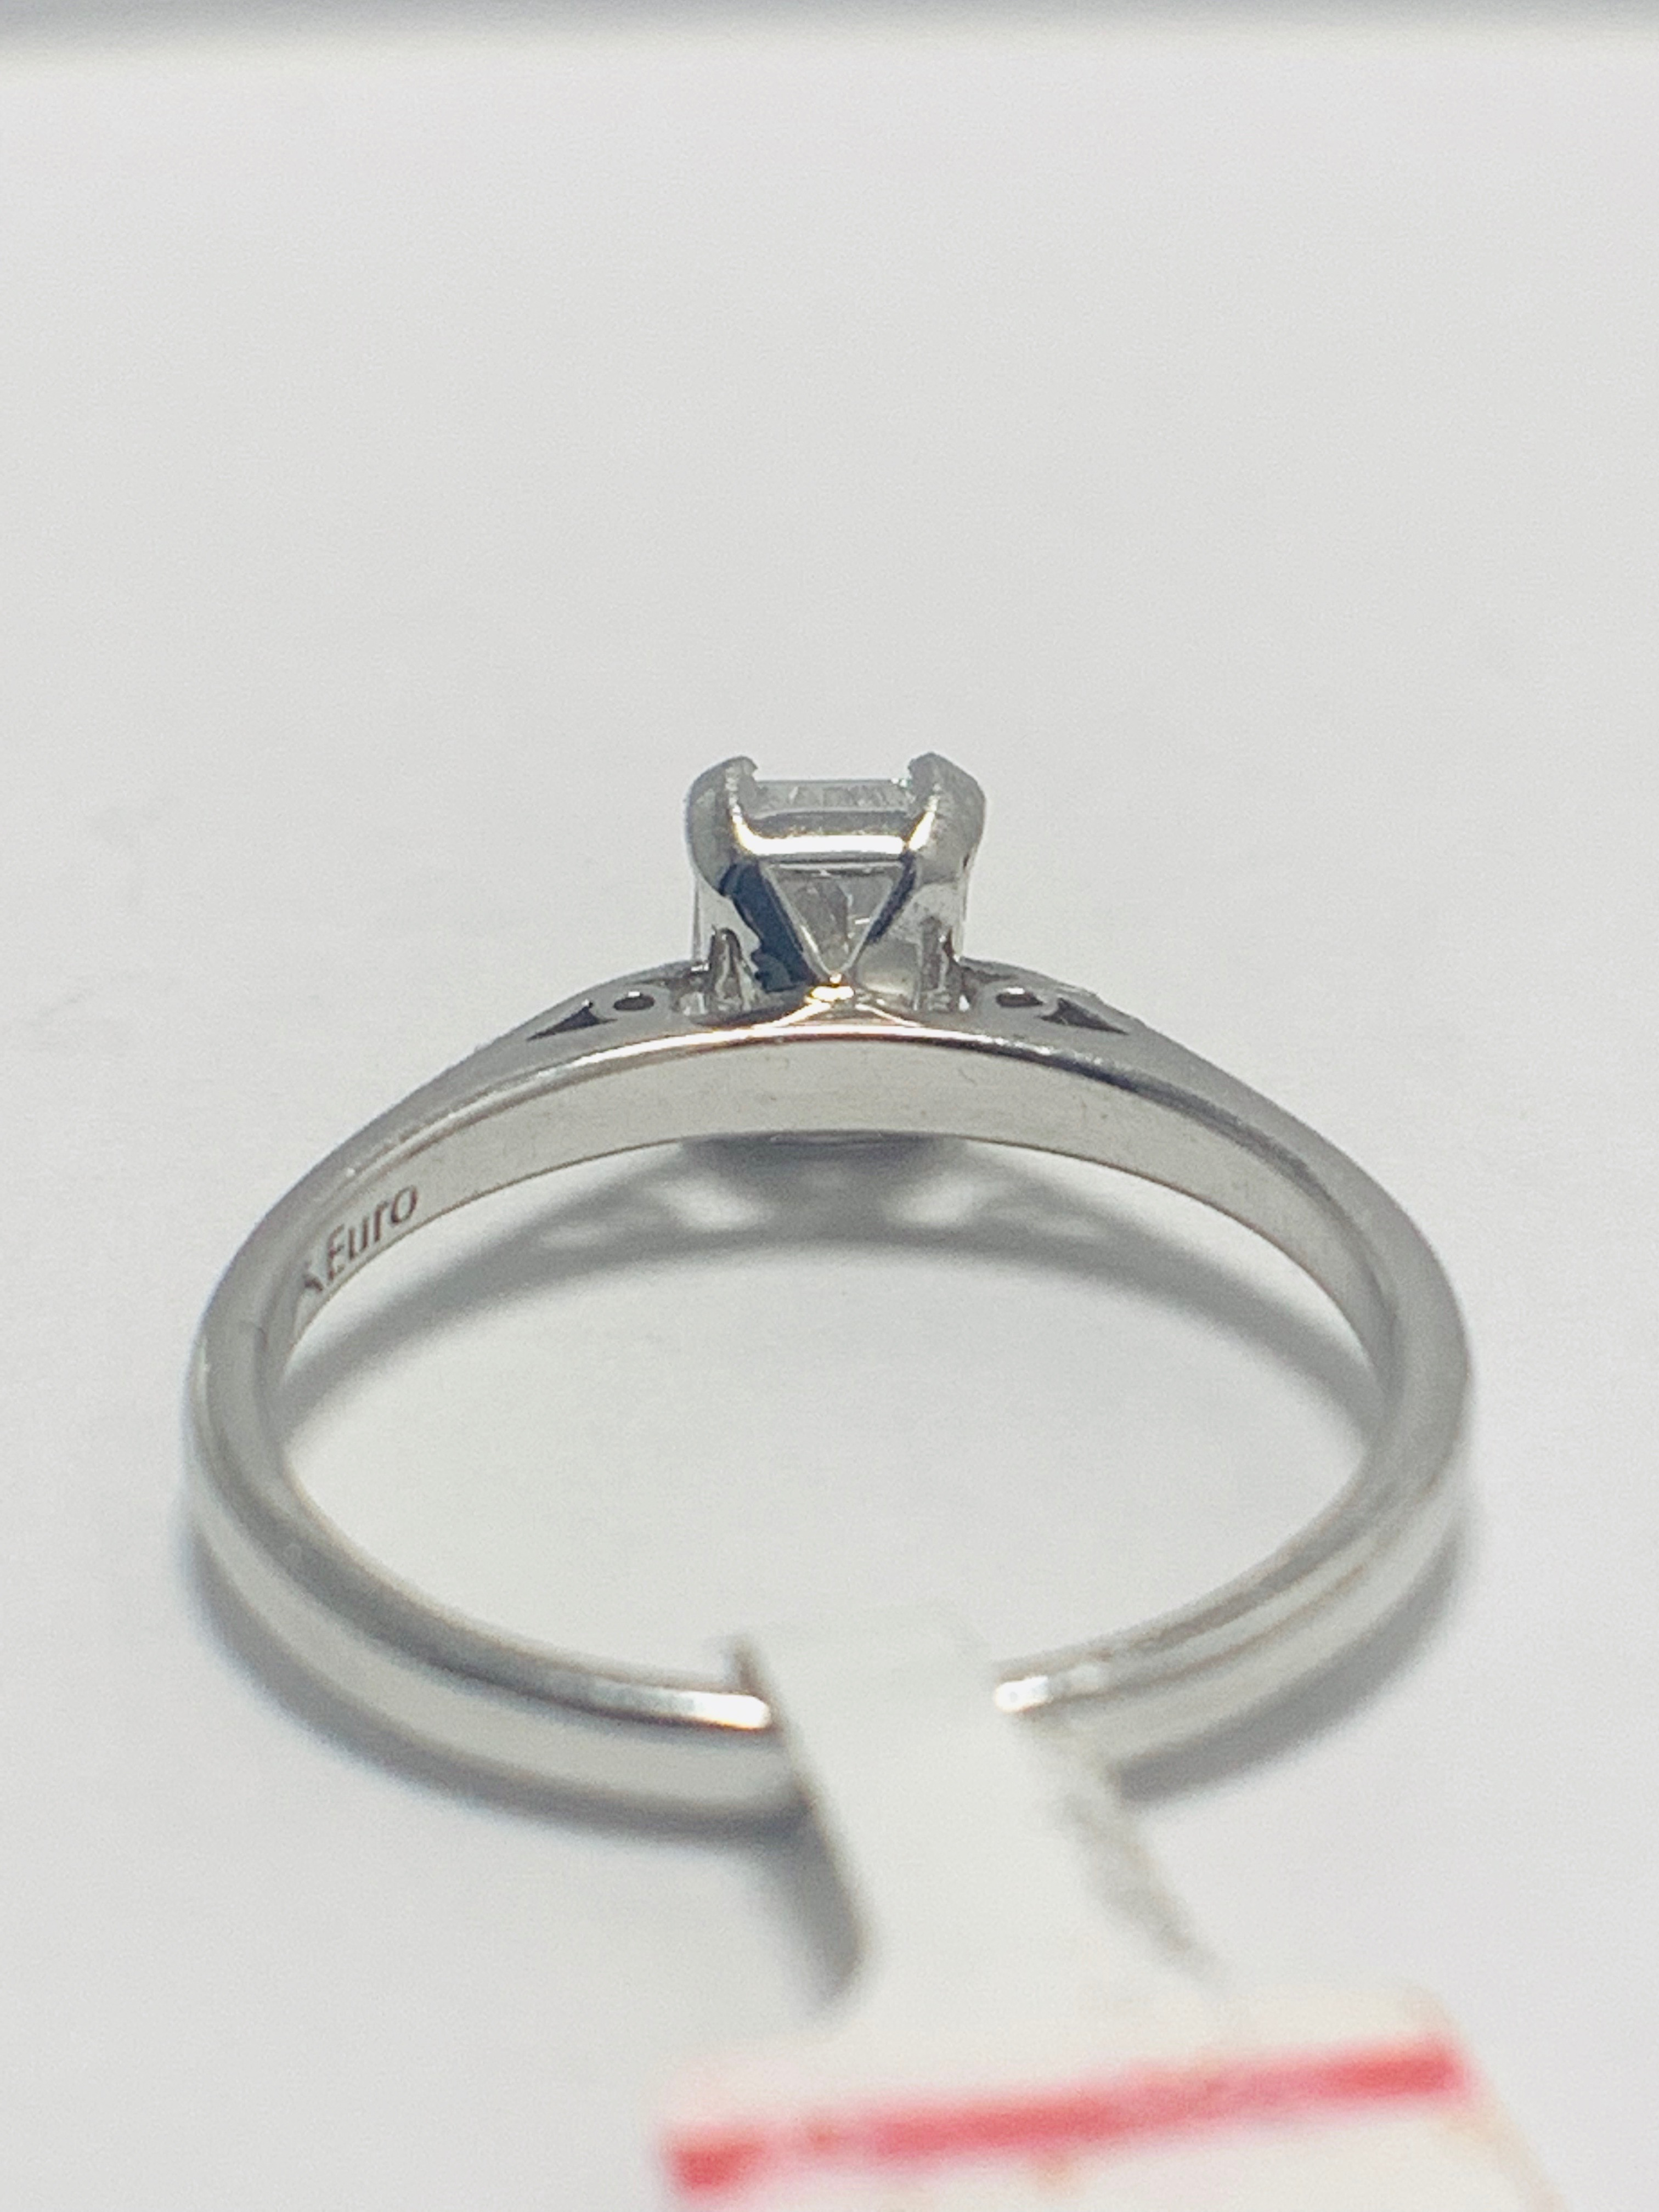 1ct Radiant cut natural diamond - Image 5 of 9